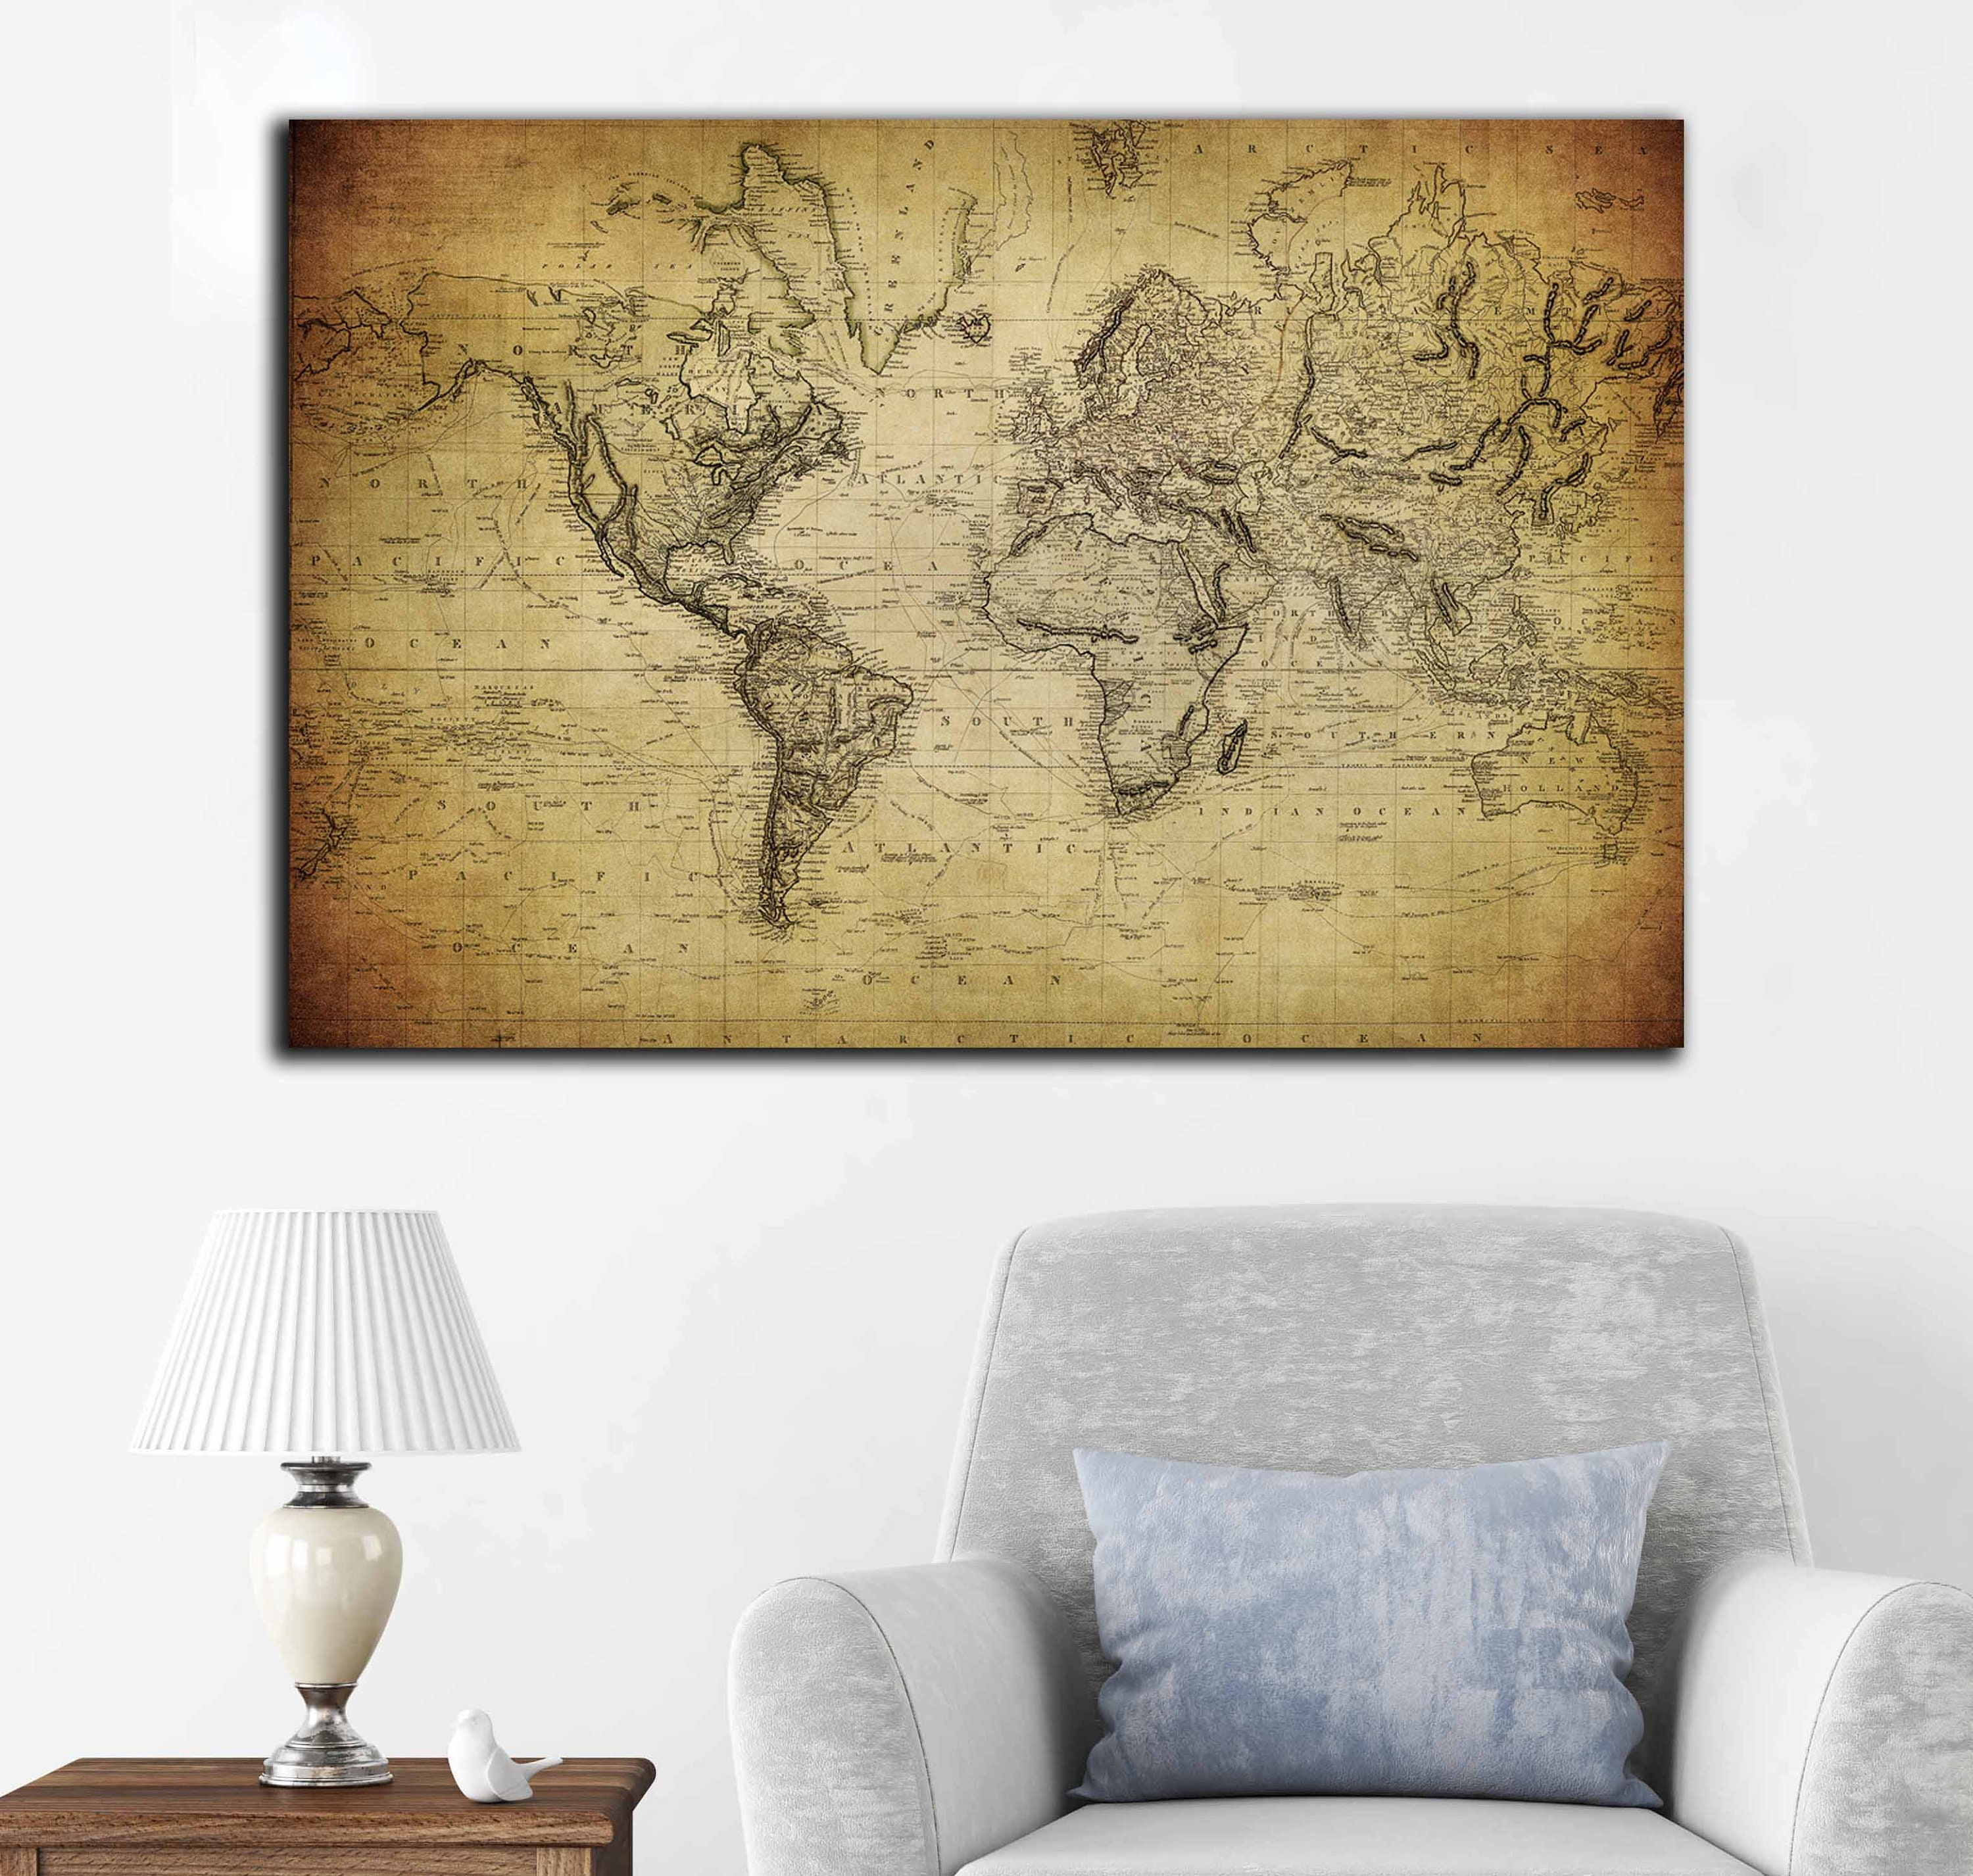 Vintage 1814 world map canvas panel ready to hang, world map vintage ...